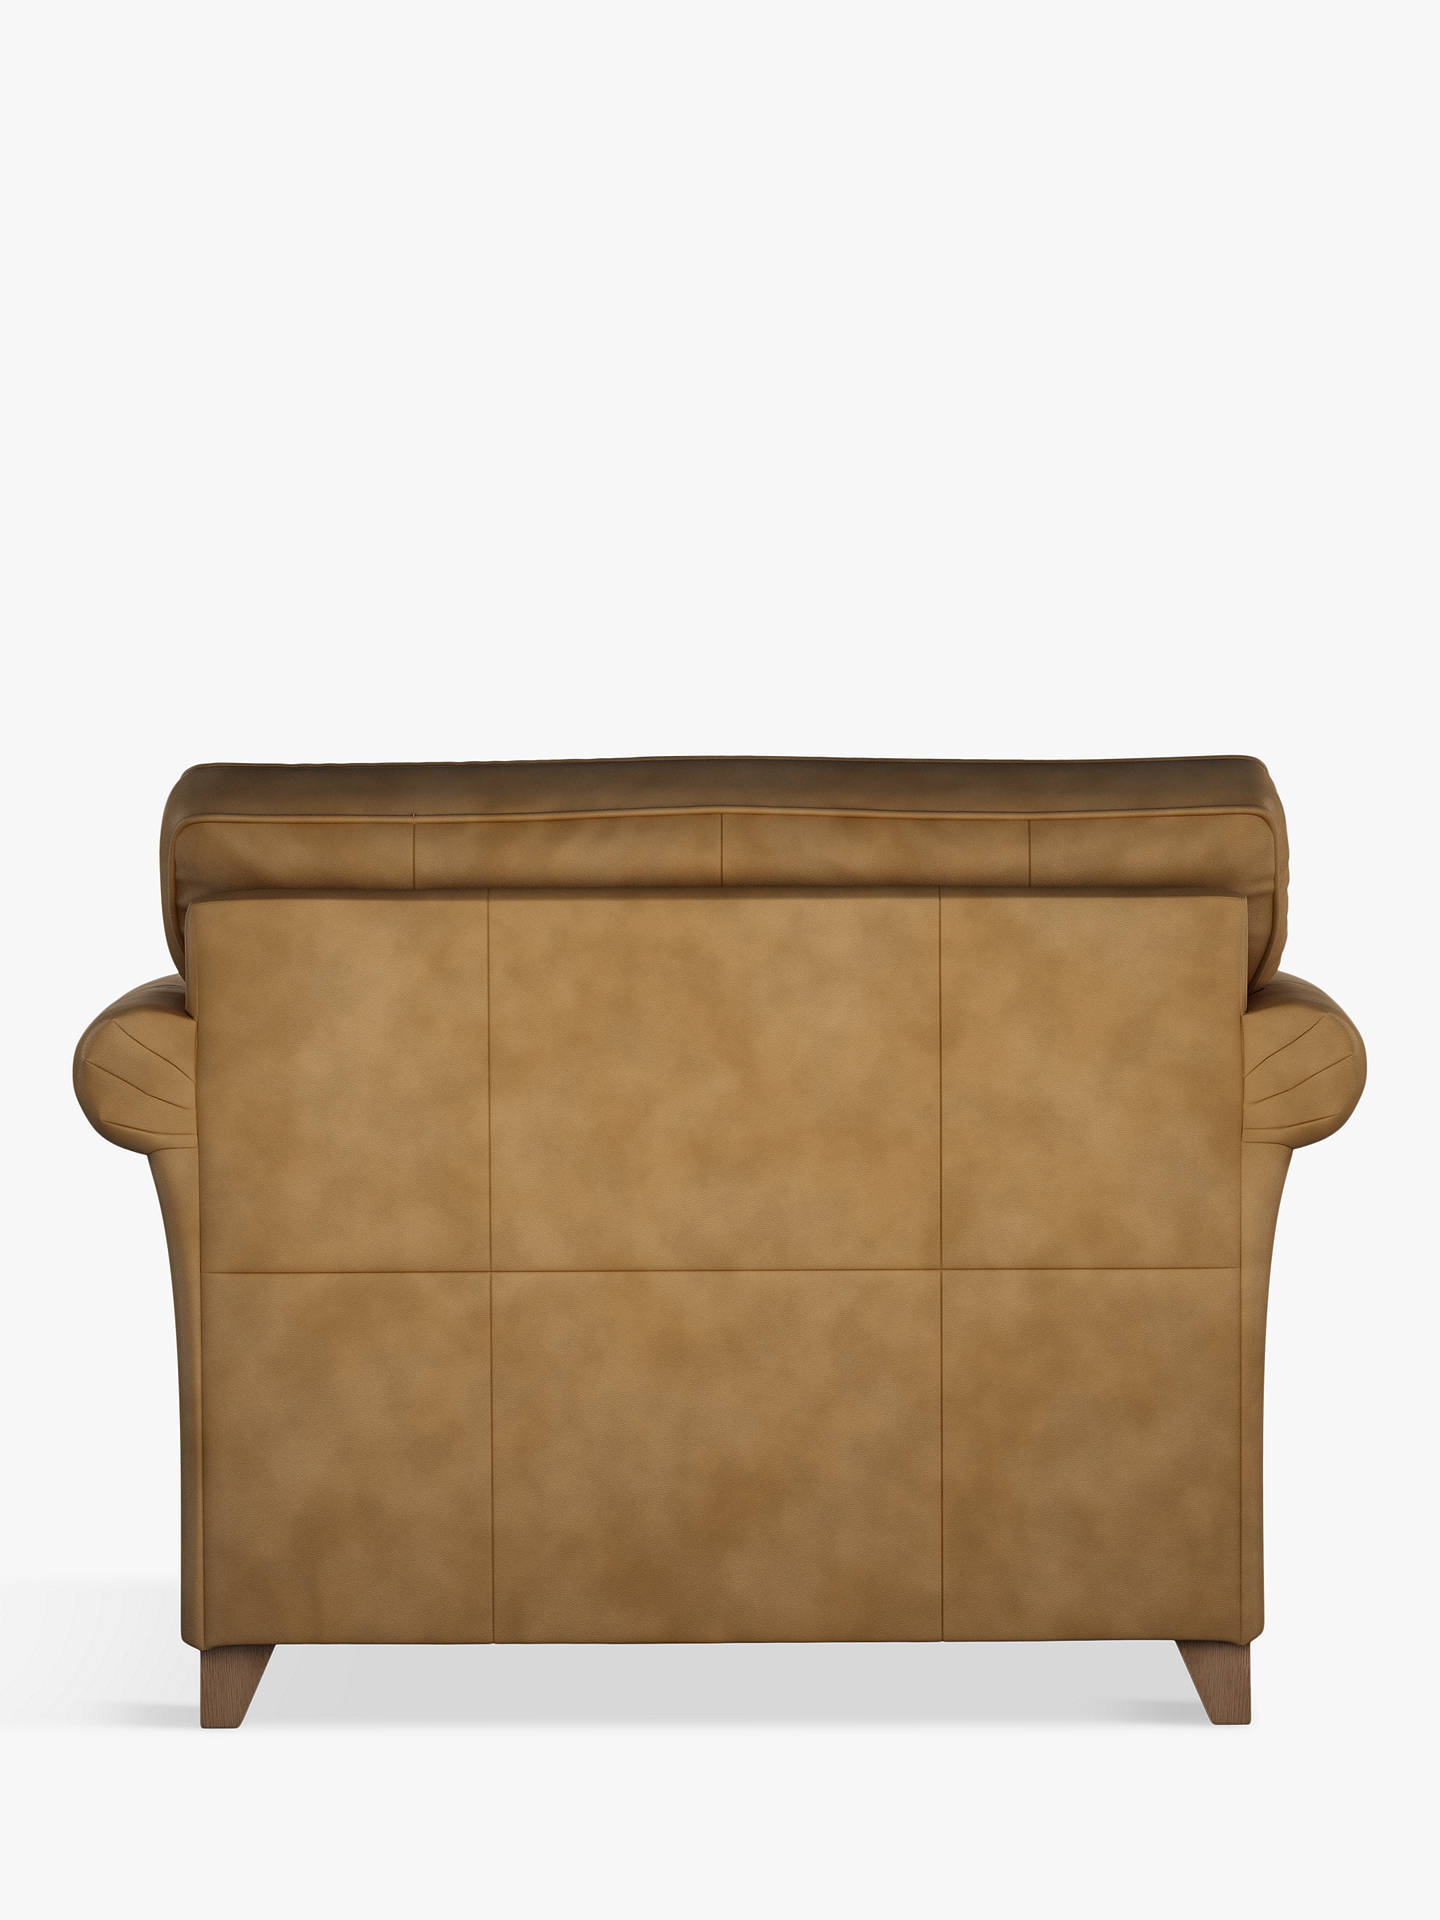 Buy John Lewis & Partners Charlotte Leather Snuggler, Dark Leg, Demetra Light Tan Online at johnlewis.com